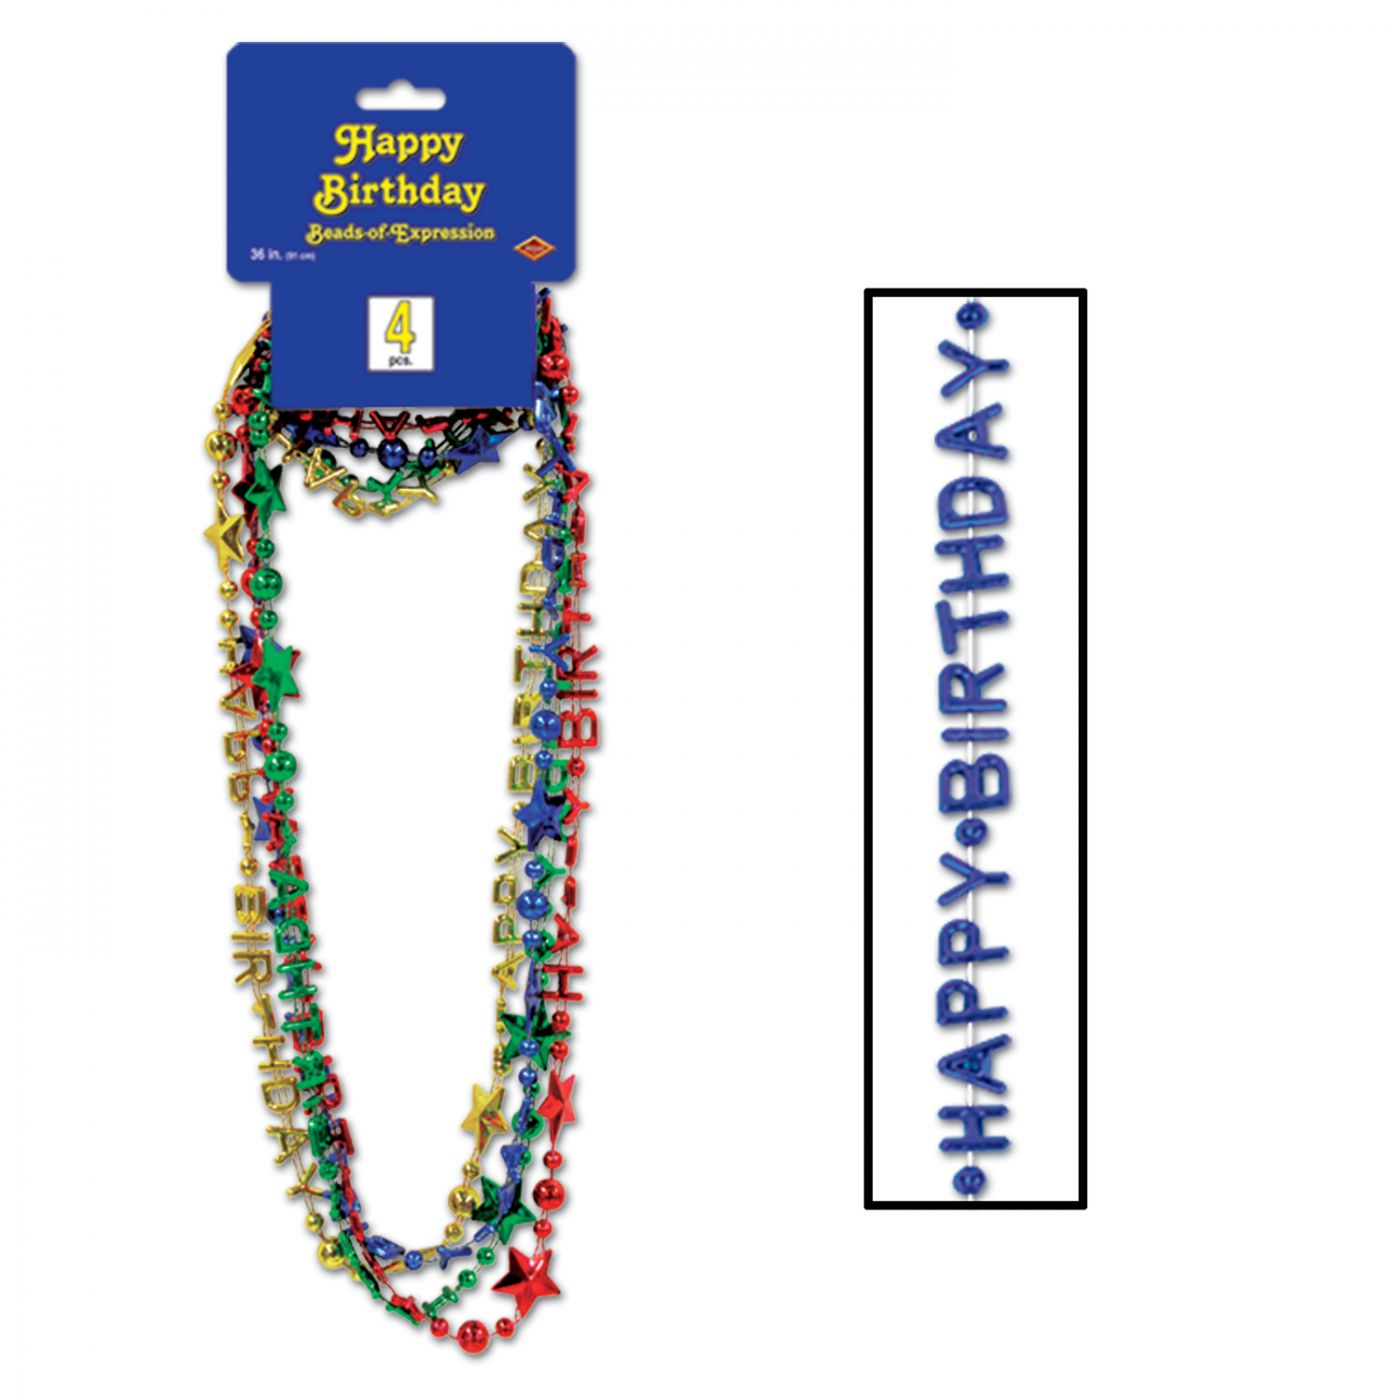 Happy Birthday Beads-Of-Expression image